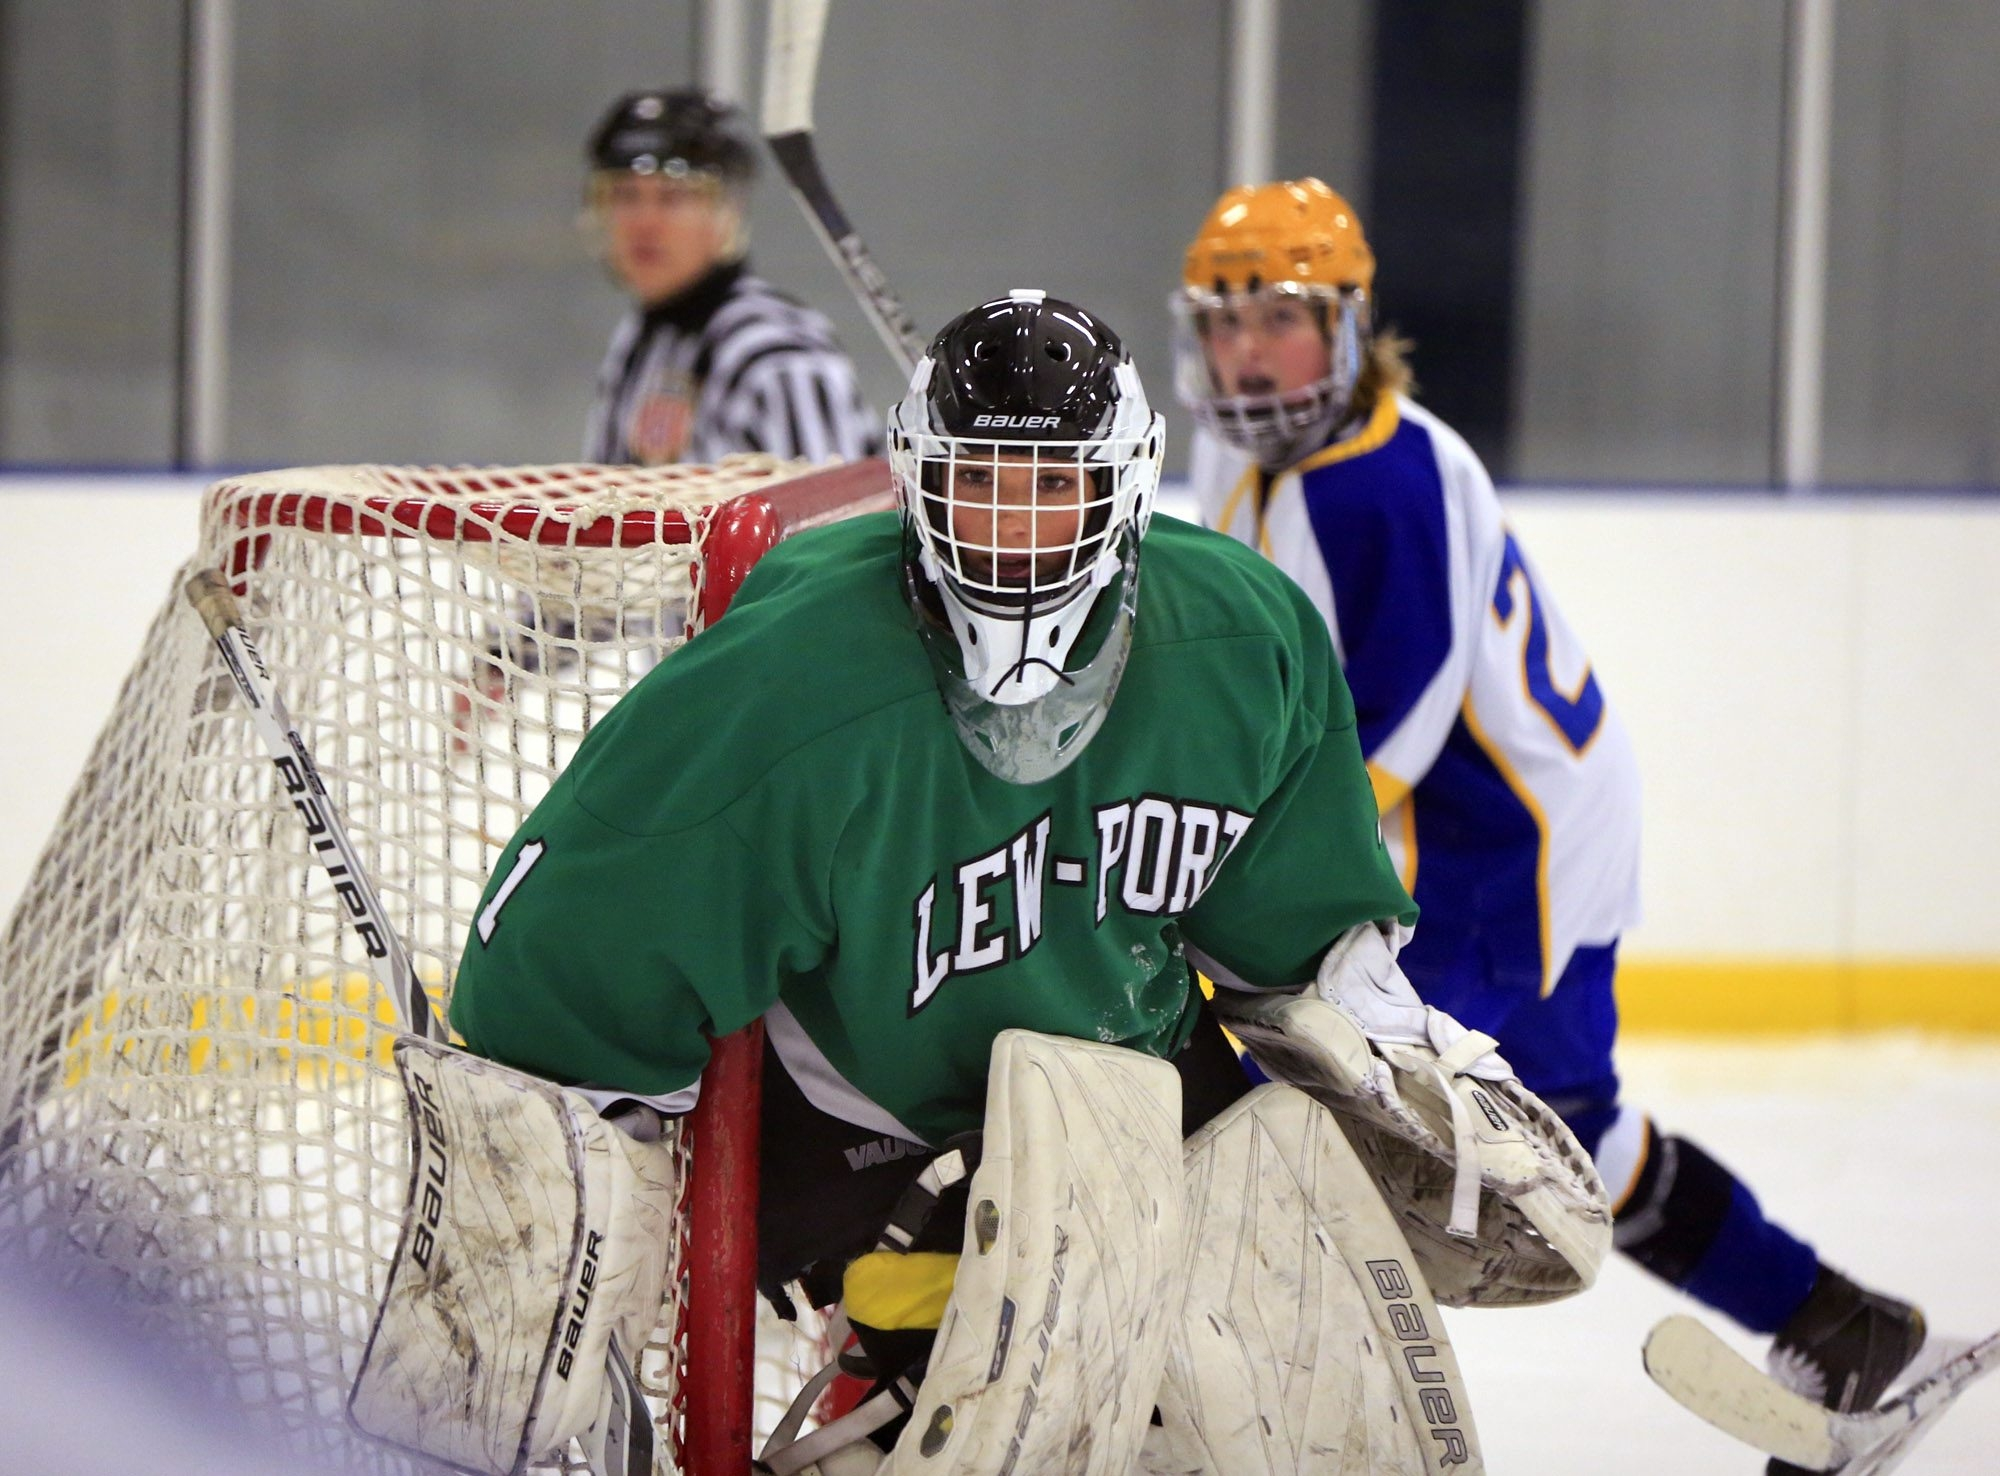 Lewiston-Porter goaltender Kyra Johansson gets in position to make save in a game against Lockport in a Western New York Federation Division 4 game at Hyde Park last month.